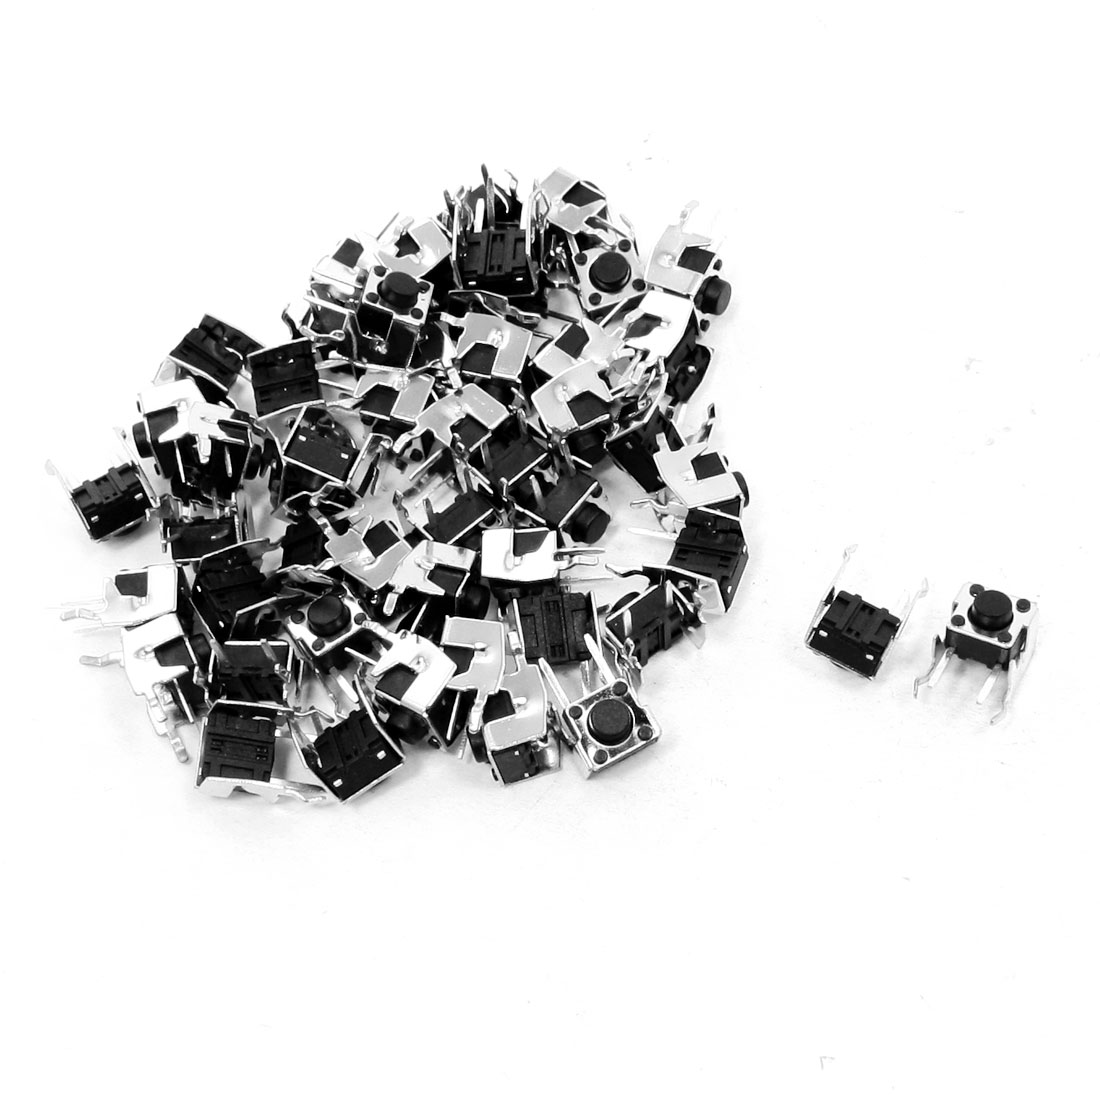 50pcs Momentary 2 Pin Right Angle Tactile Tact Button Switch 6mm x 6mm x 5mm